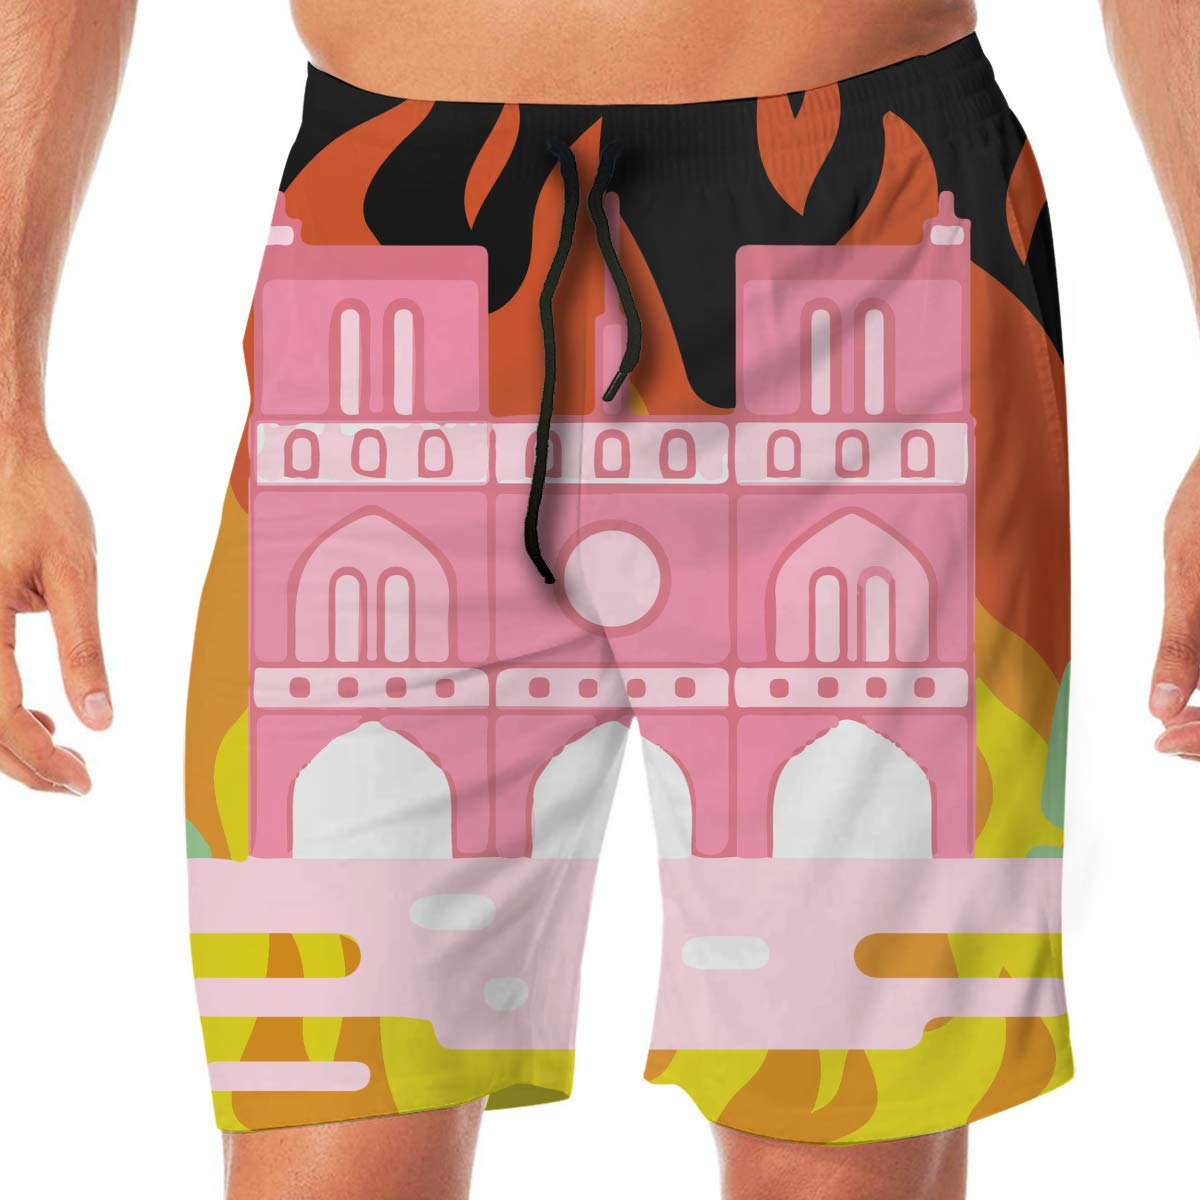 Mens Swim Trunks Yearning Cathedral Notre Dame De Paris Fire 7 Casual Sport Beach Boardshort Adults Boys